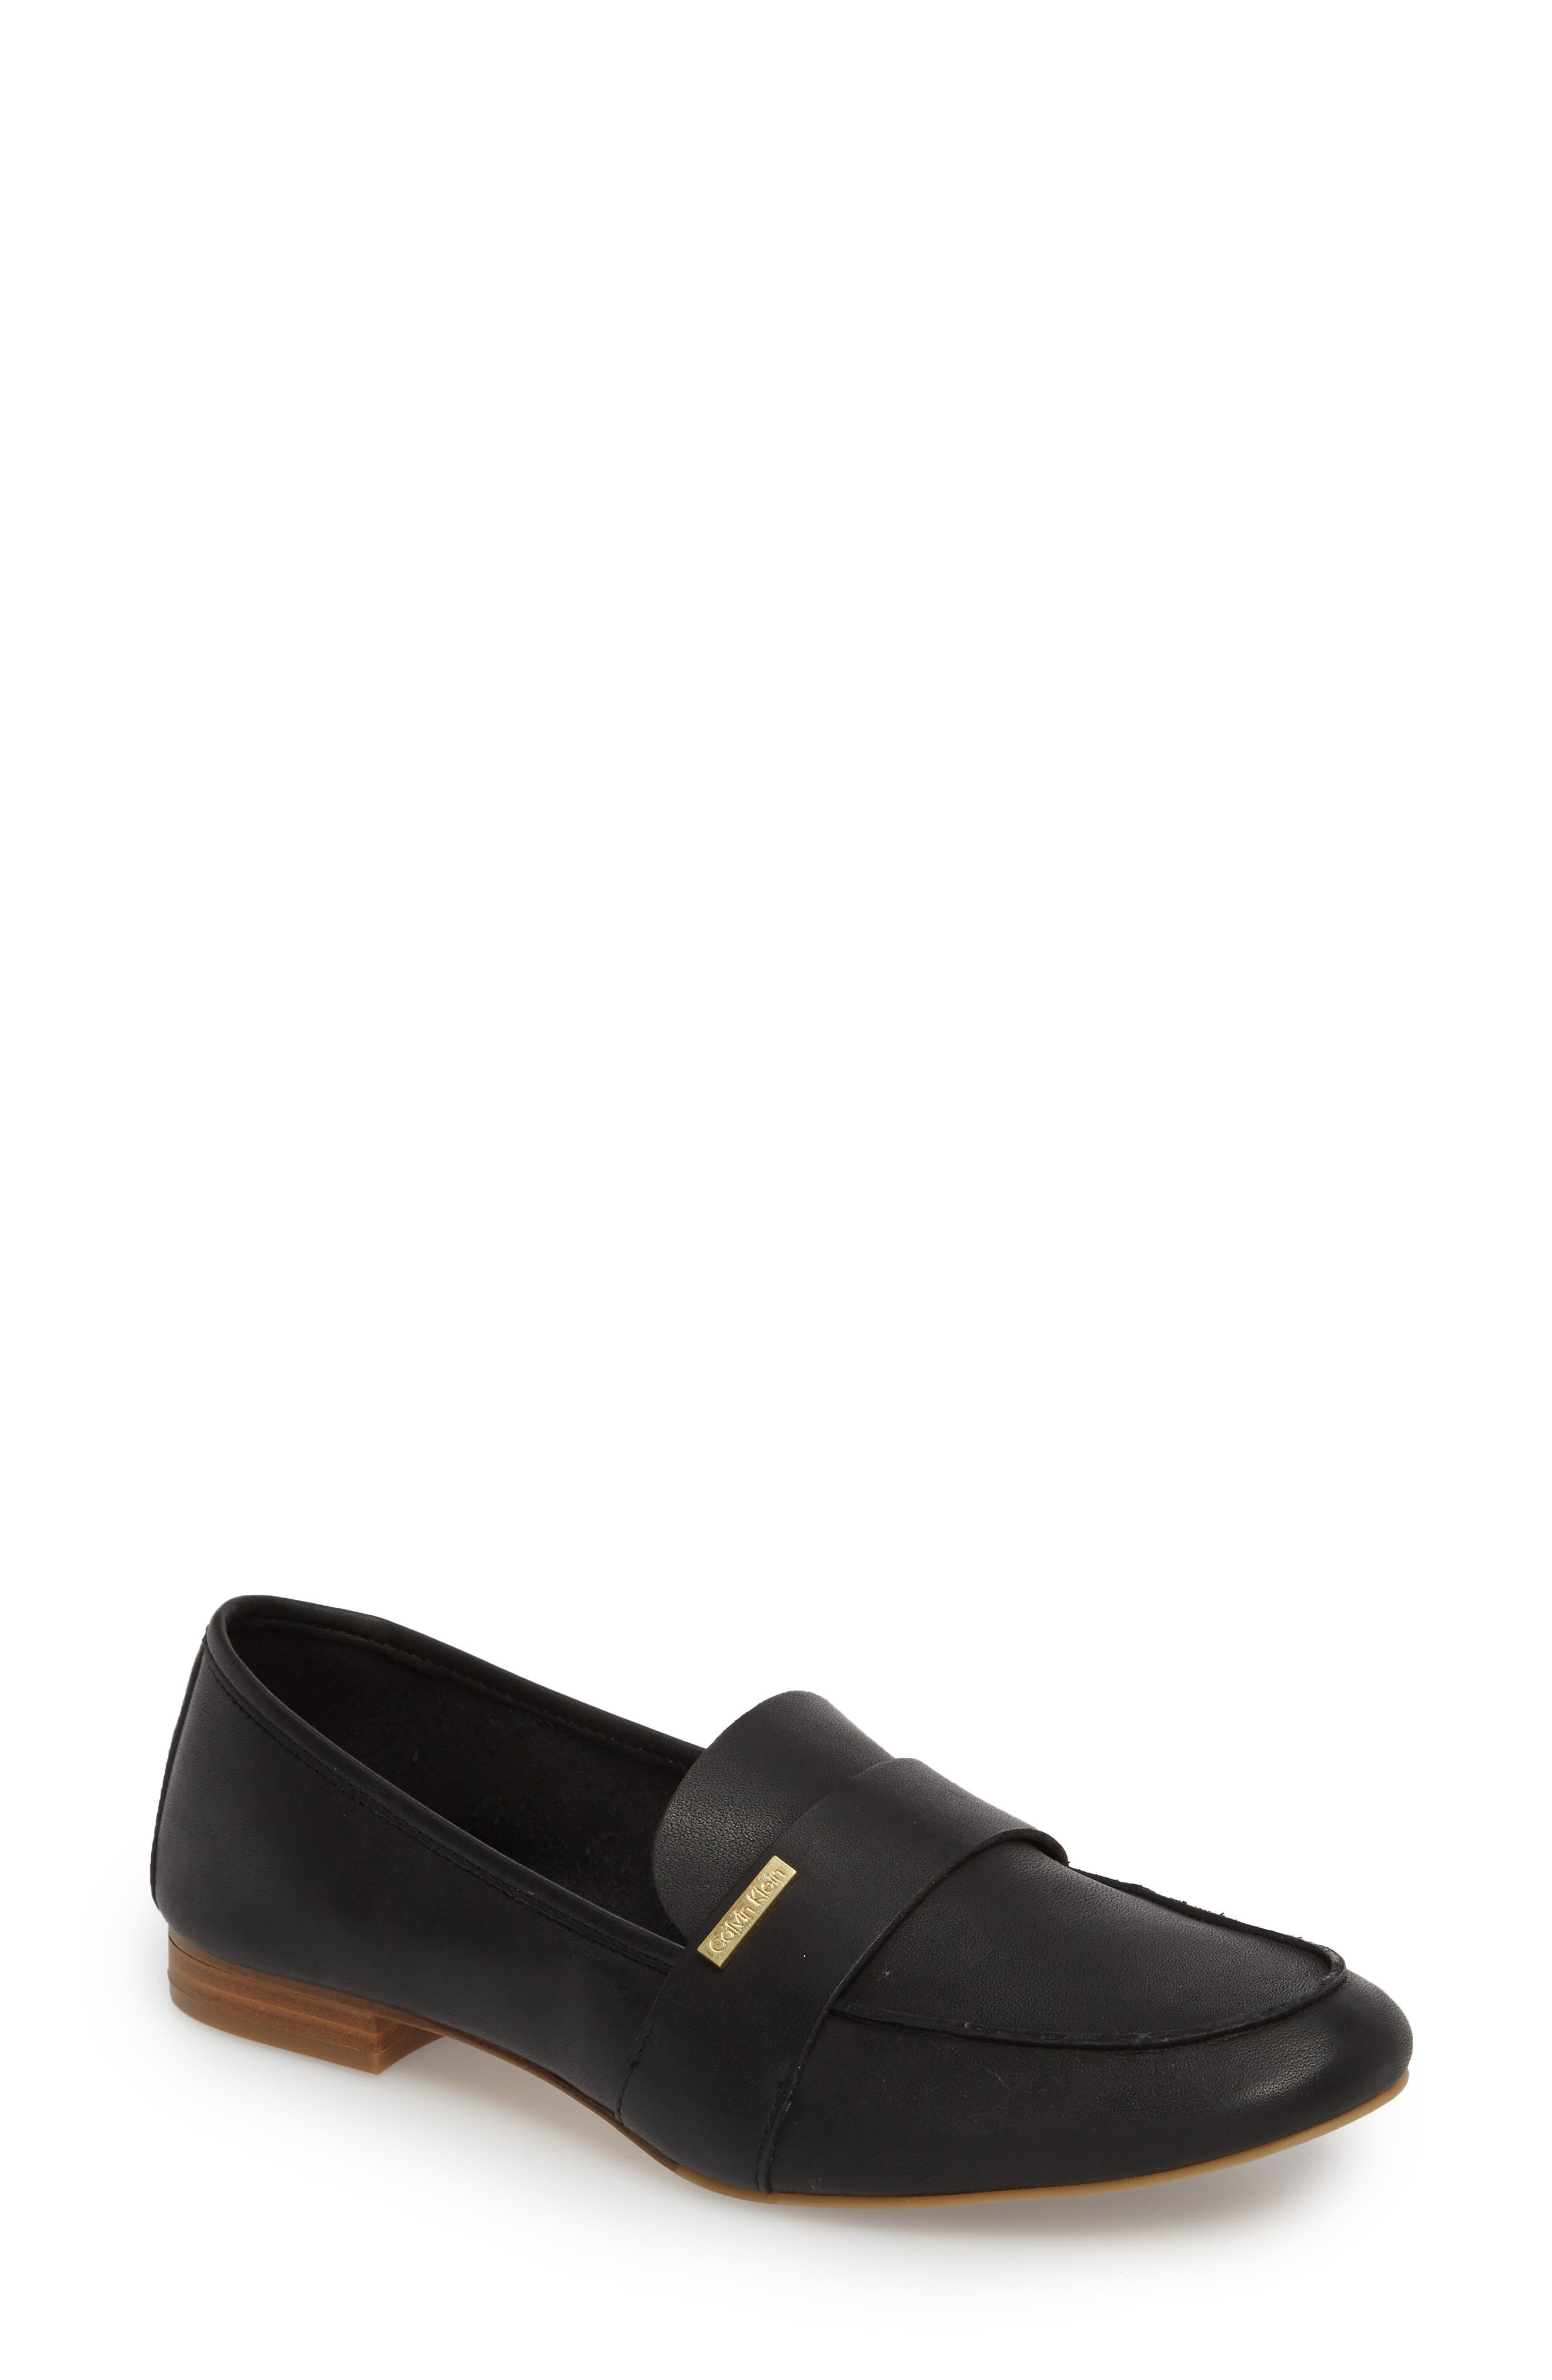 CALVIN KLEIN Cemmie Loafer, Main, color, 001